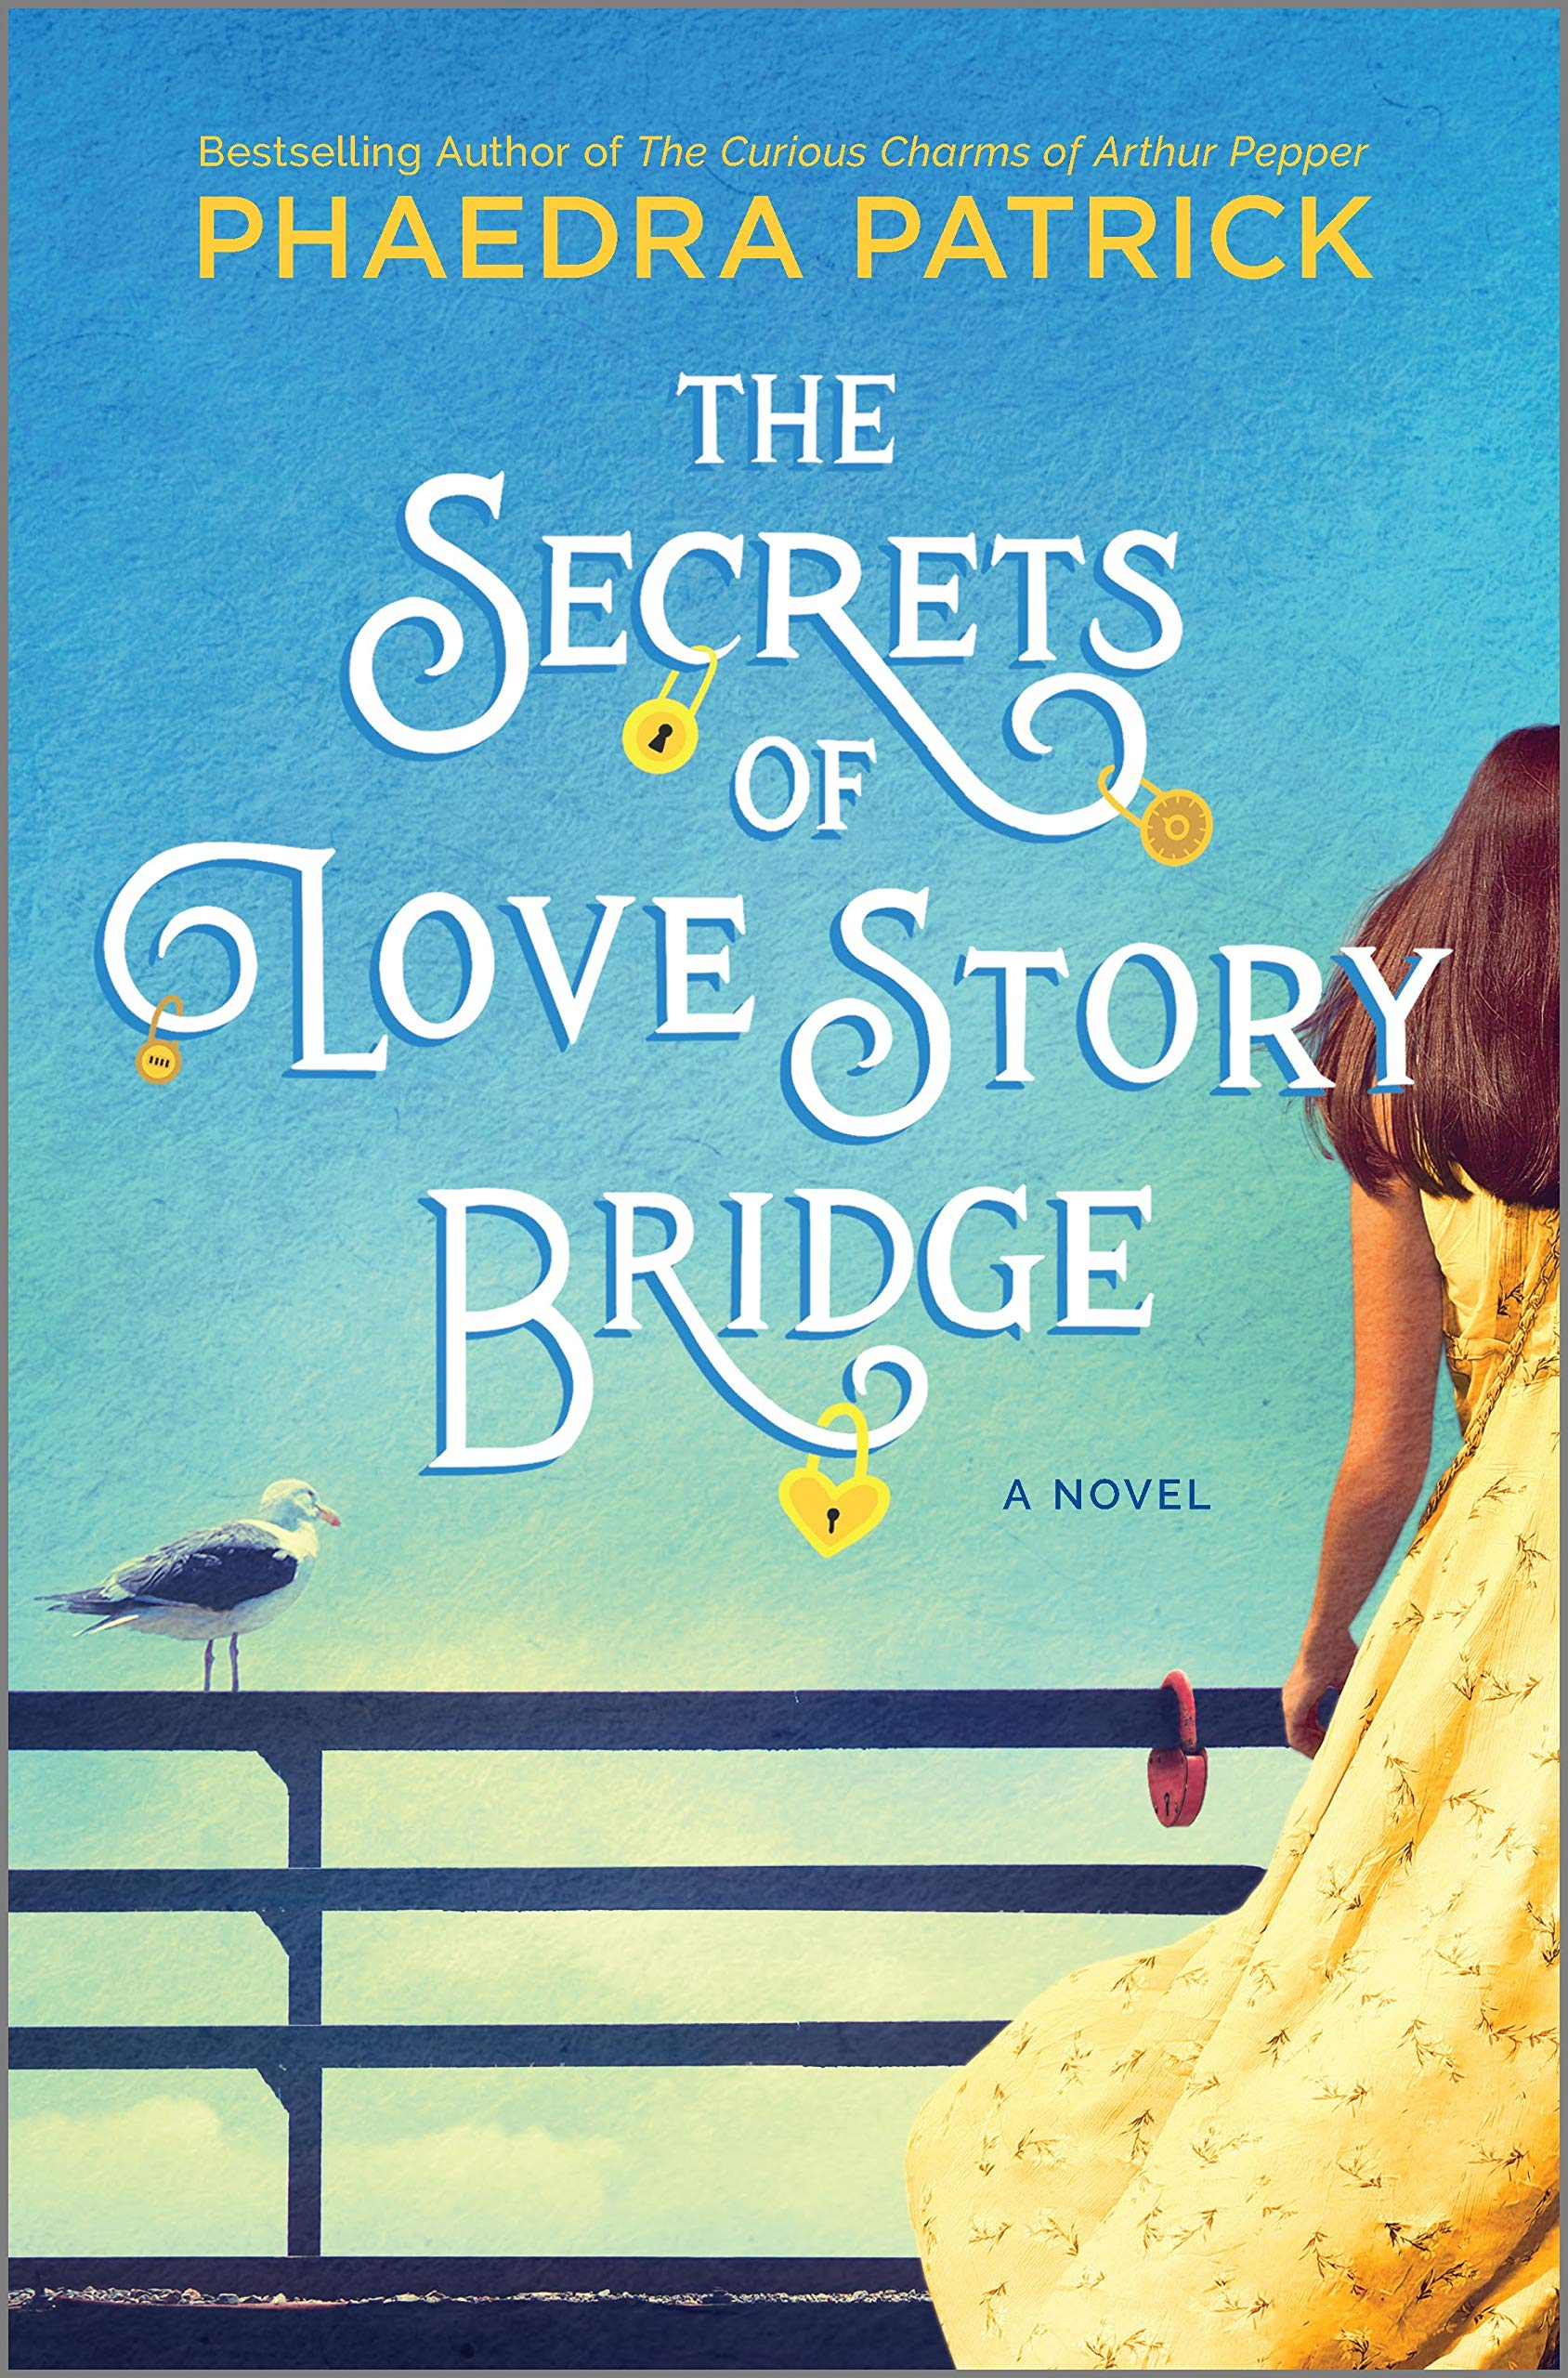 The Secrets of Love Story Bridge: A Novel: Patrick, Phaedra: 9780778309789: Amazon.com: Books